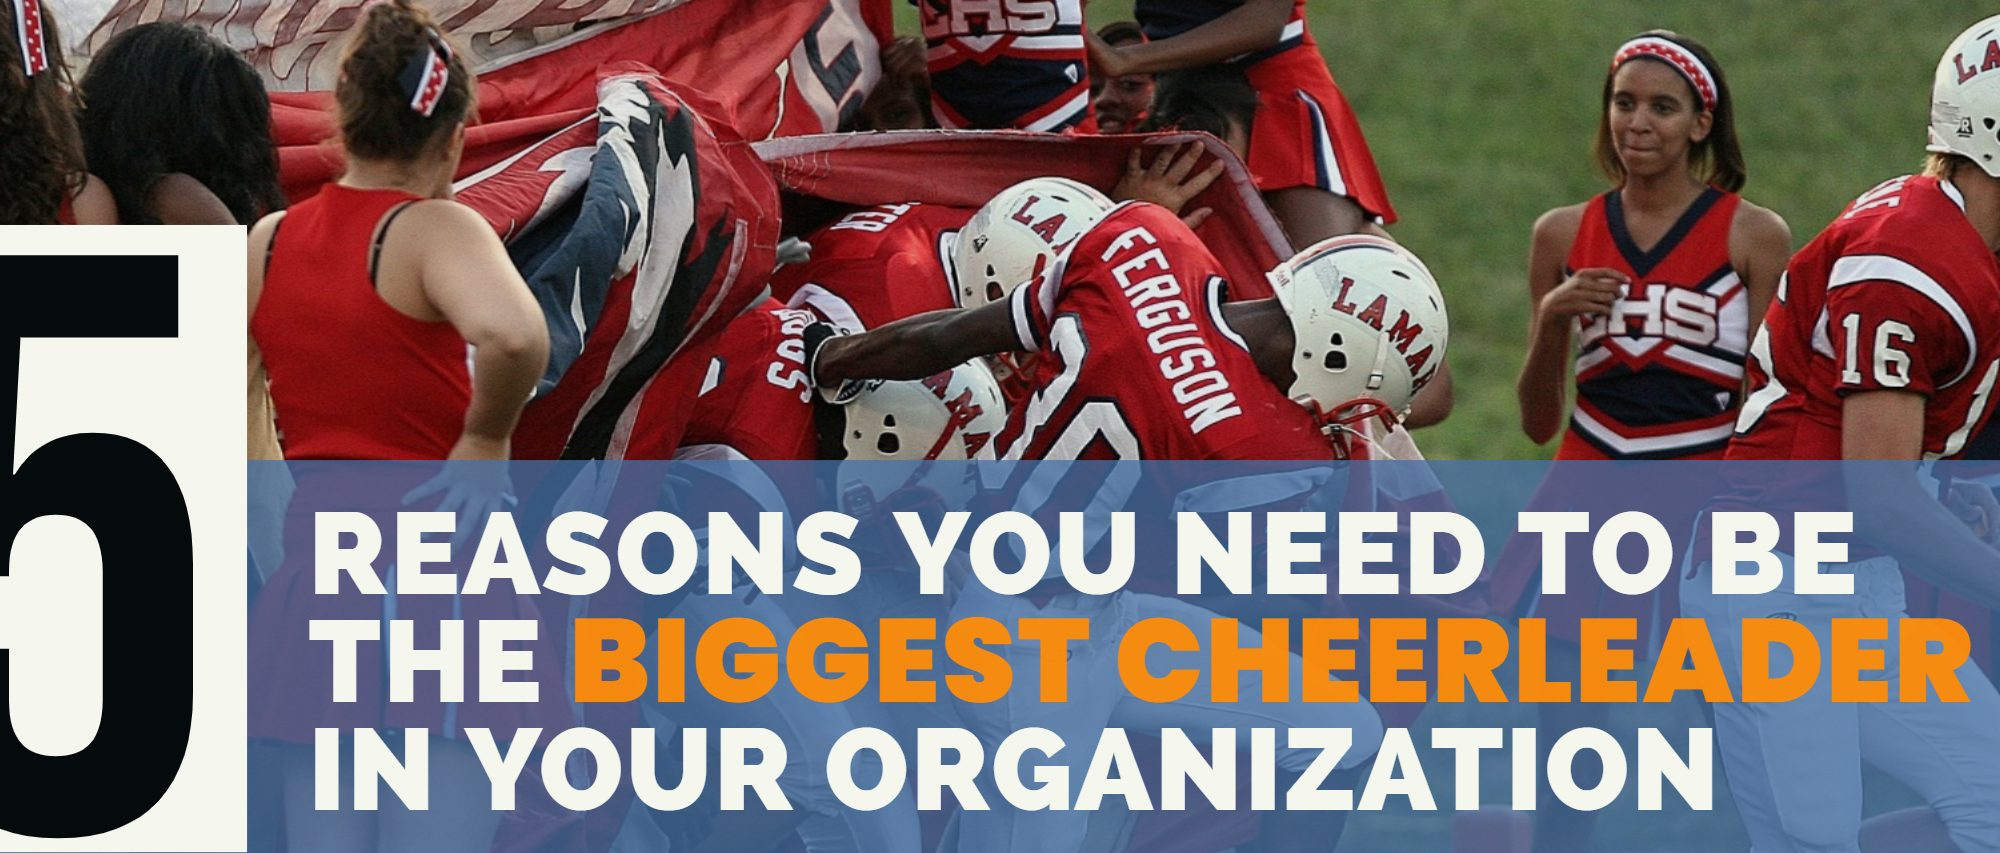 5 Reasons You Need to Be The Biggest Cheerleader in your organization paul argueta global sales coach motivational speaker sales trainer consultant